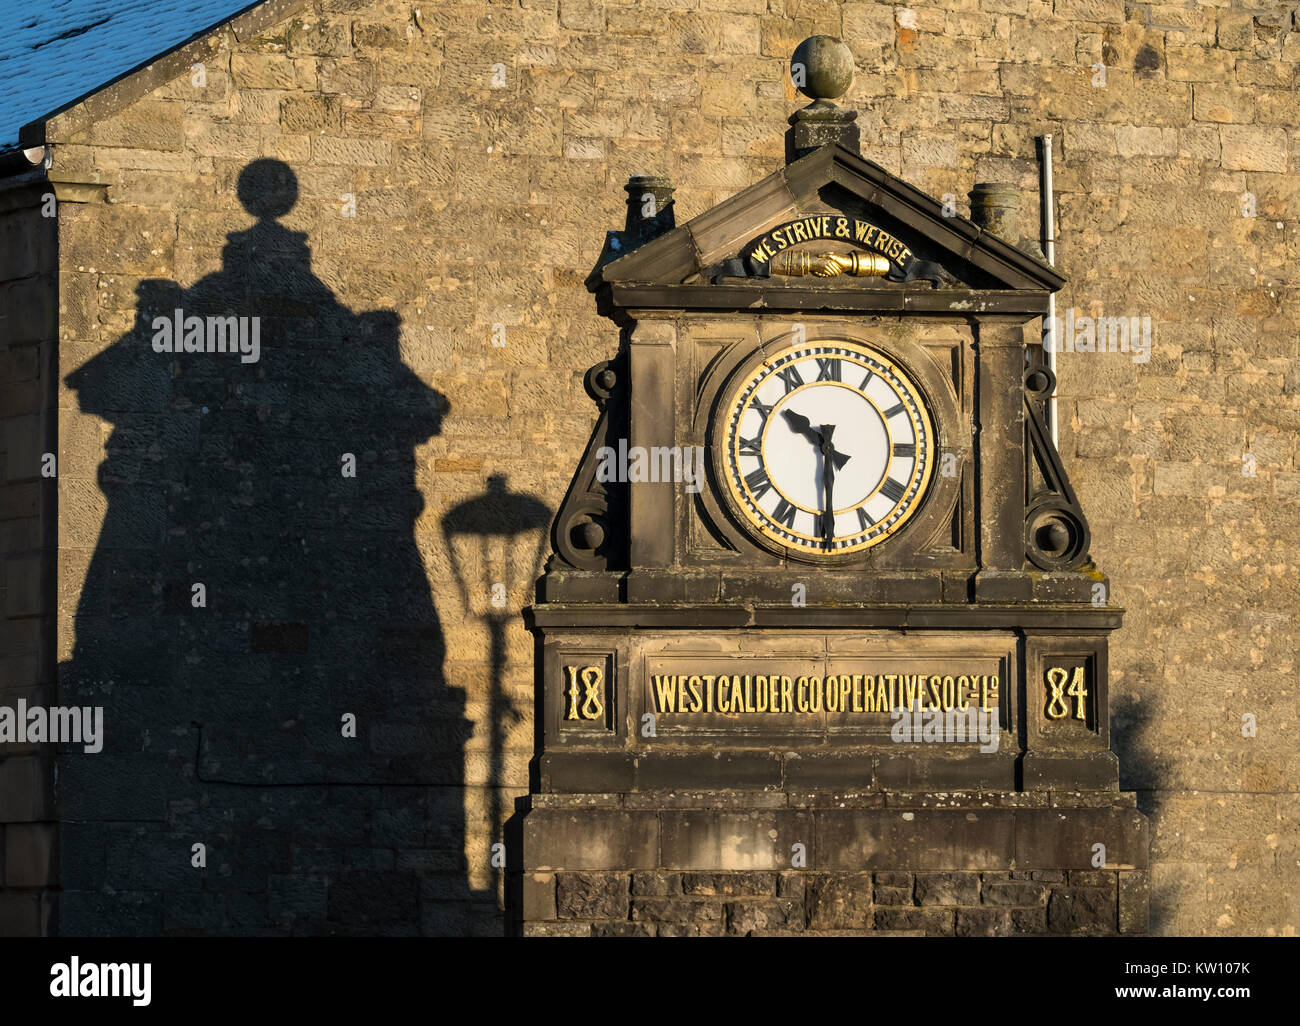 The West Calder Co-operative clock in West Calder, West Lothian - Stock Image